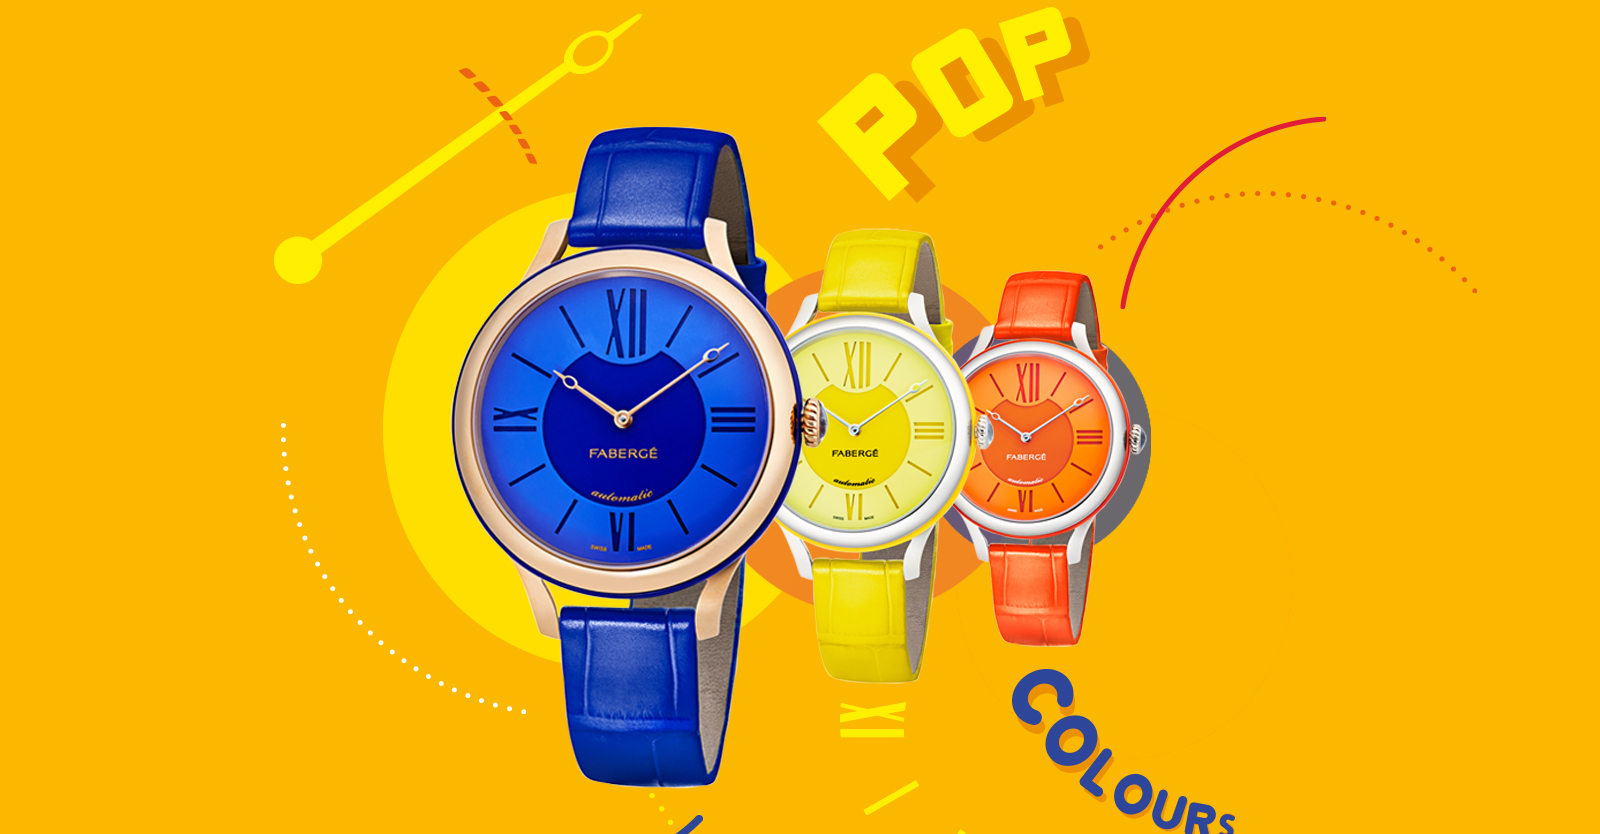 Colourful drawings of three timepieces from the Fabergé Flirt Collection. One blue timepiece, one yellow timepiece, one orange timepiece.